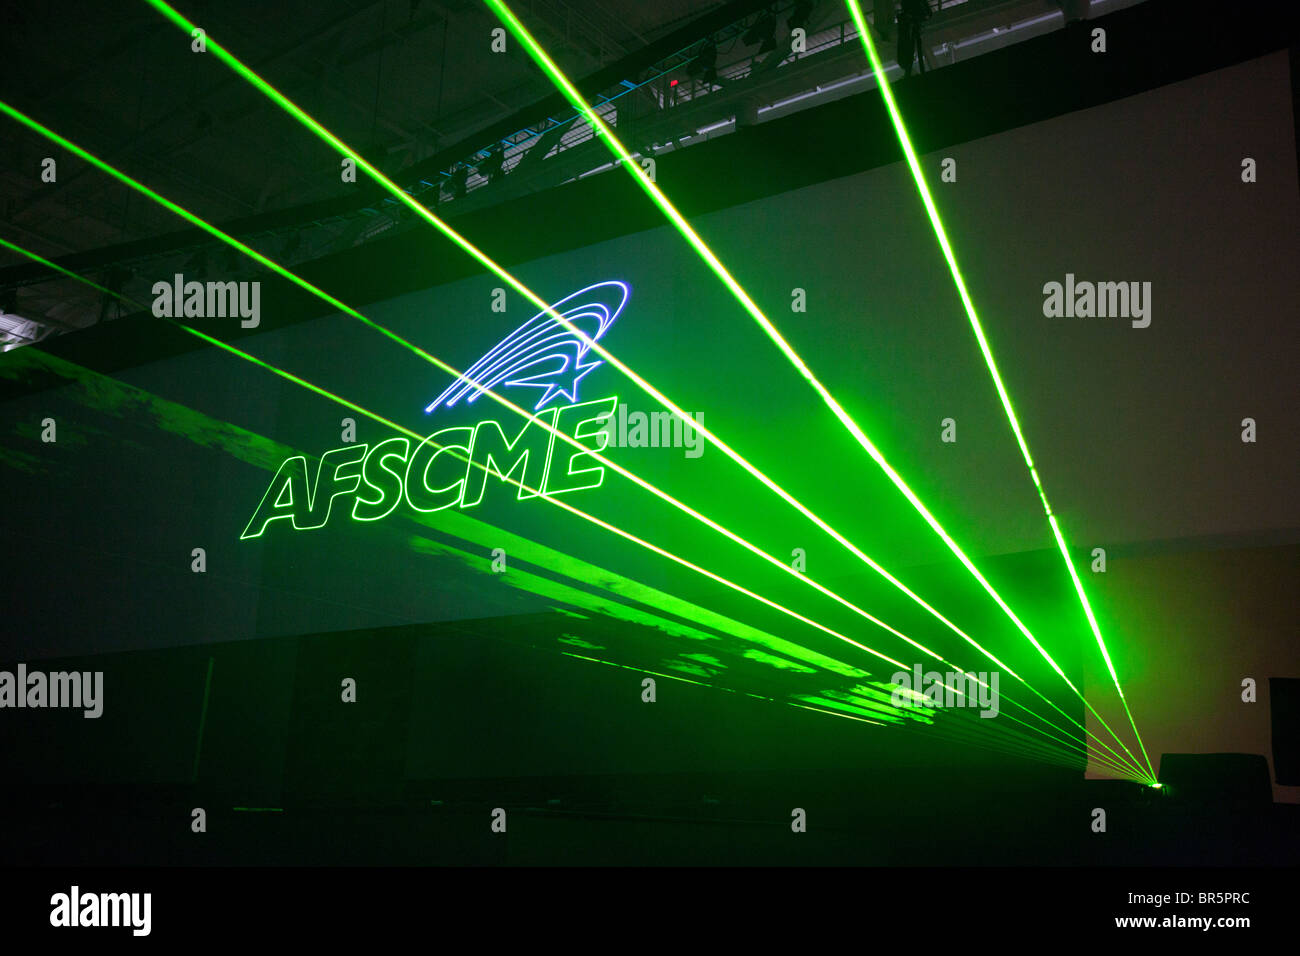 Boston, Massachusetts - A laser light show duriing the convention of the public employees union AFSCME. - Stock Image